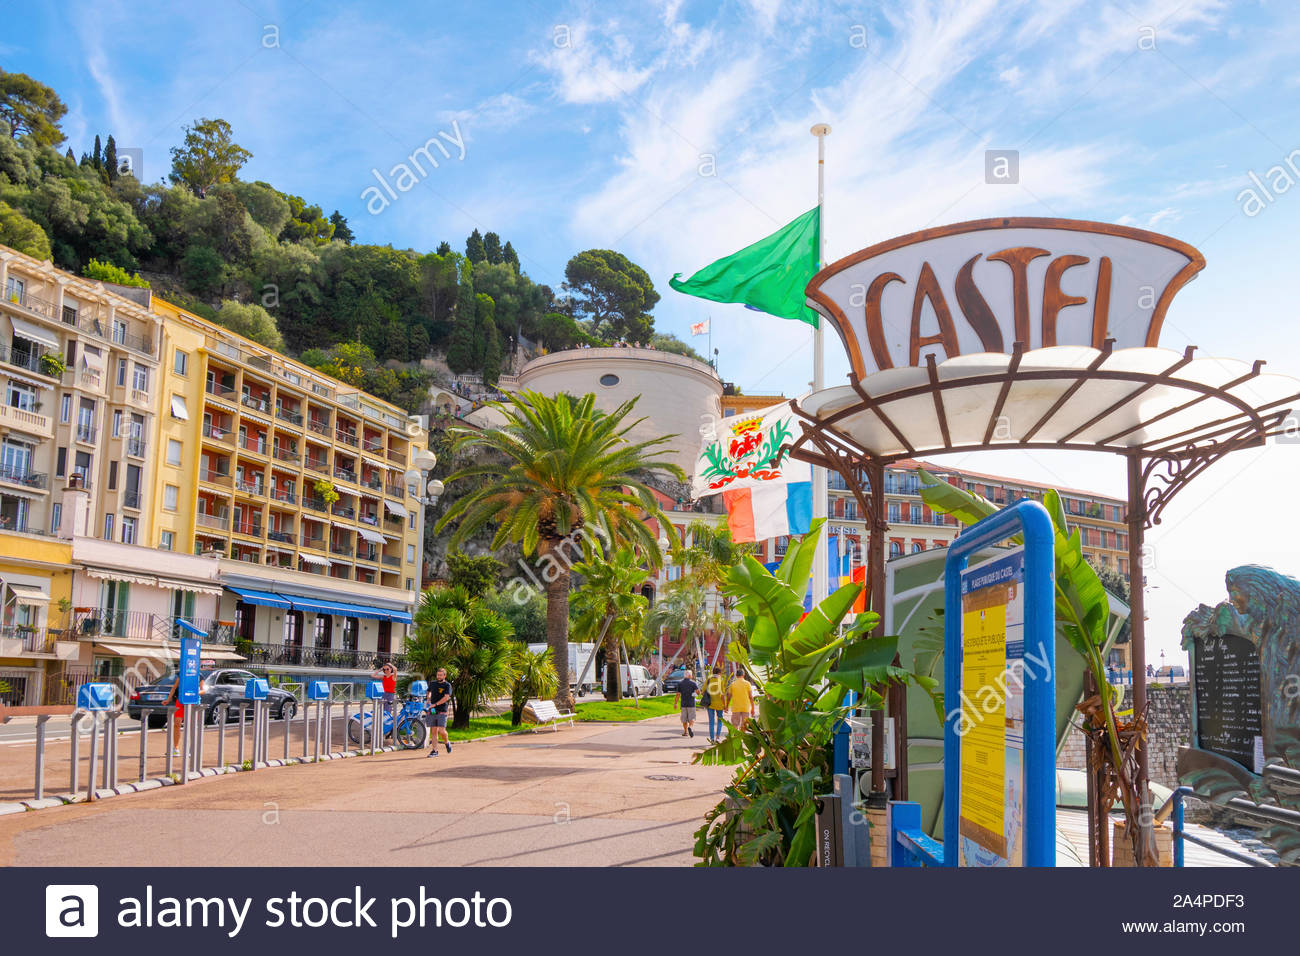 View of Castle Hill from the Promenade in front of Castel Plage and restaurant in Old View Nice France on the French Riviera. Stock Photo